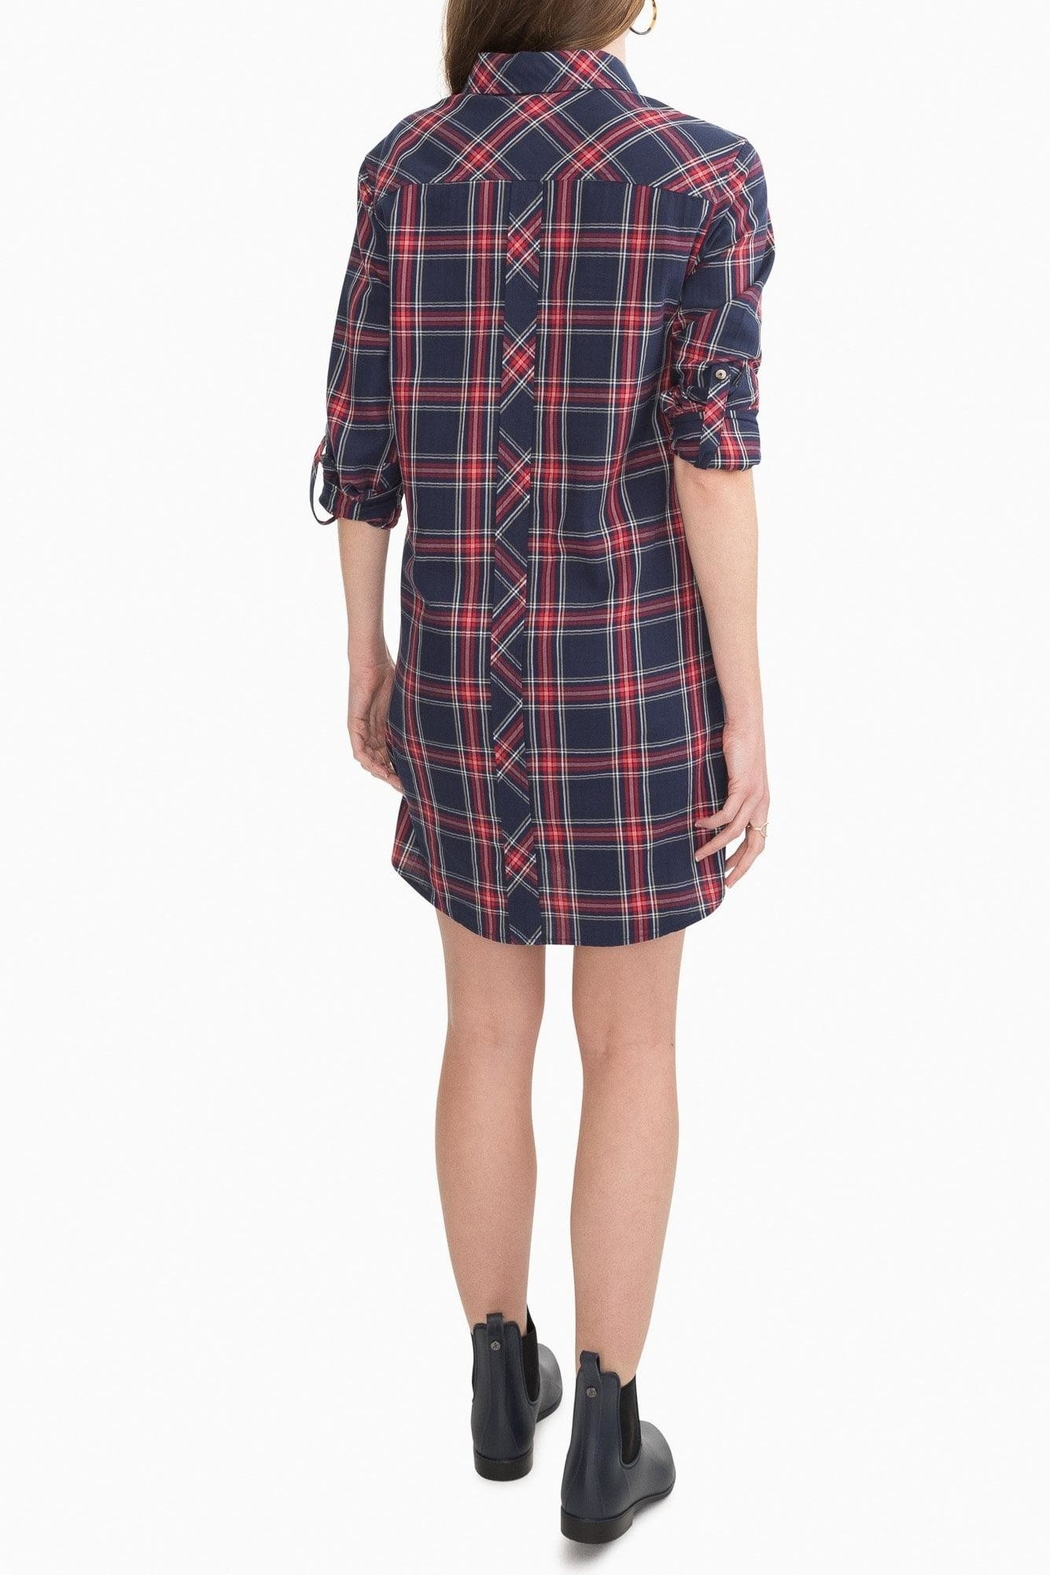 Lilly Pulitzer Alyssa Plaid Shirtdress - Front Full Image